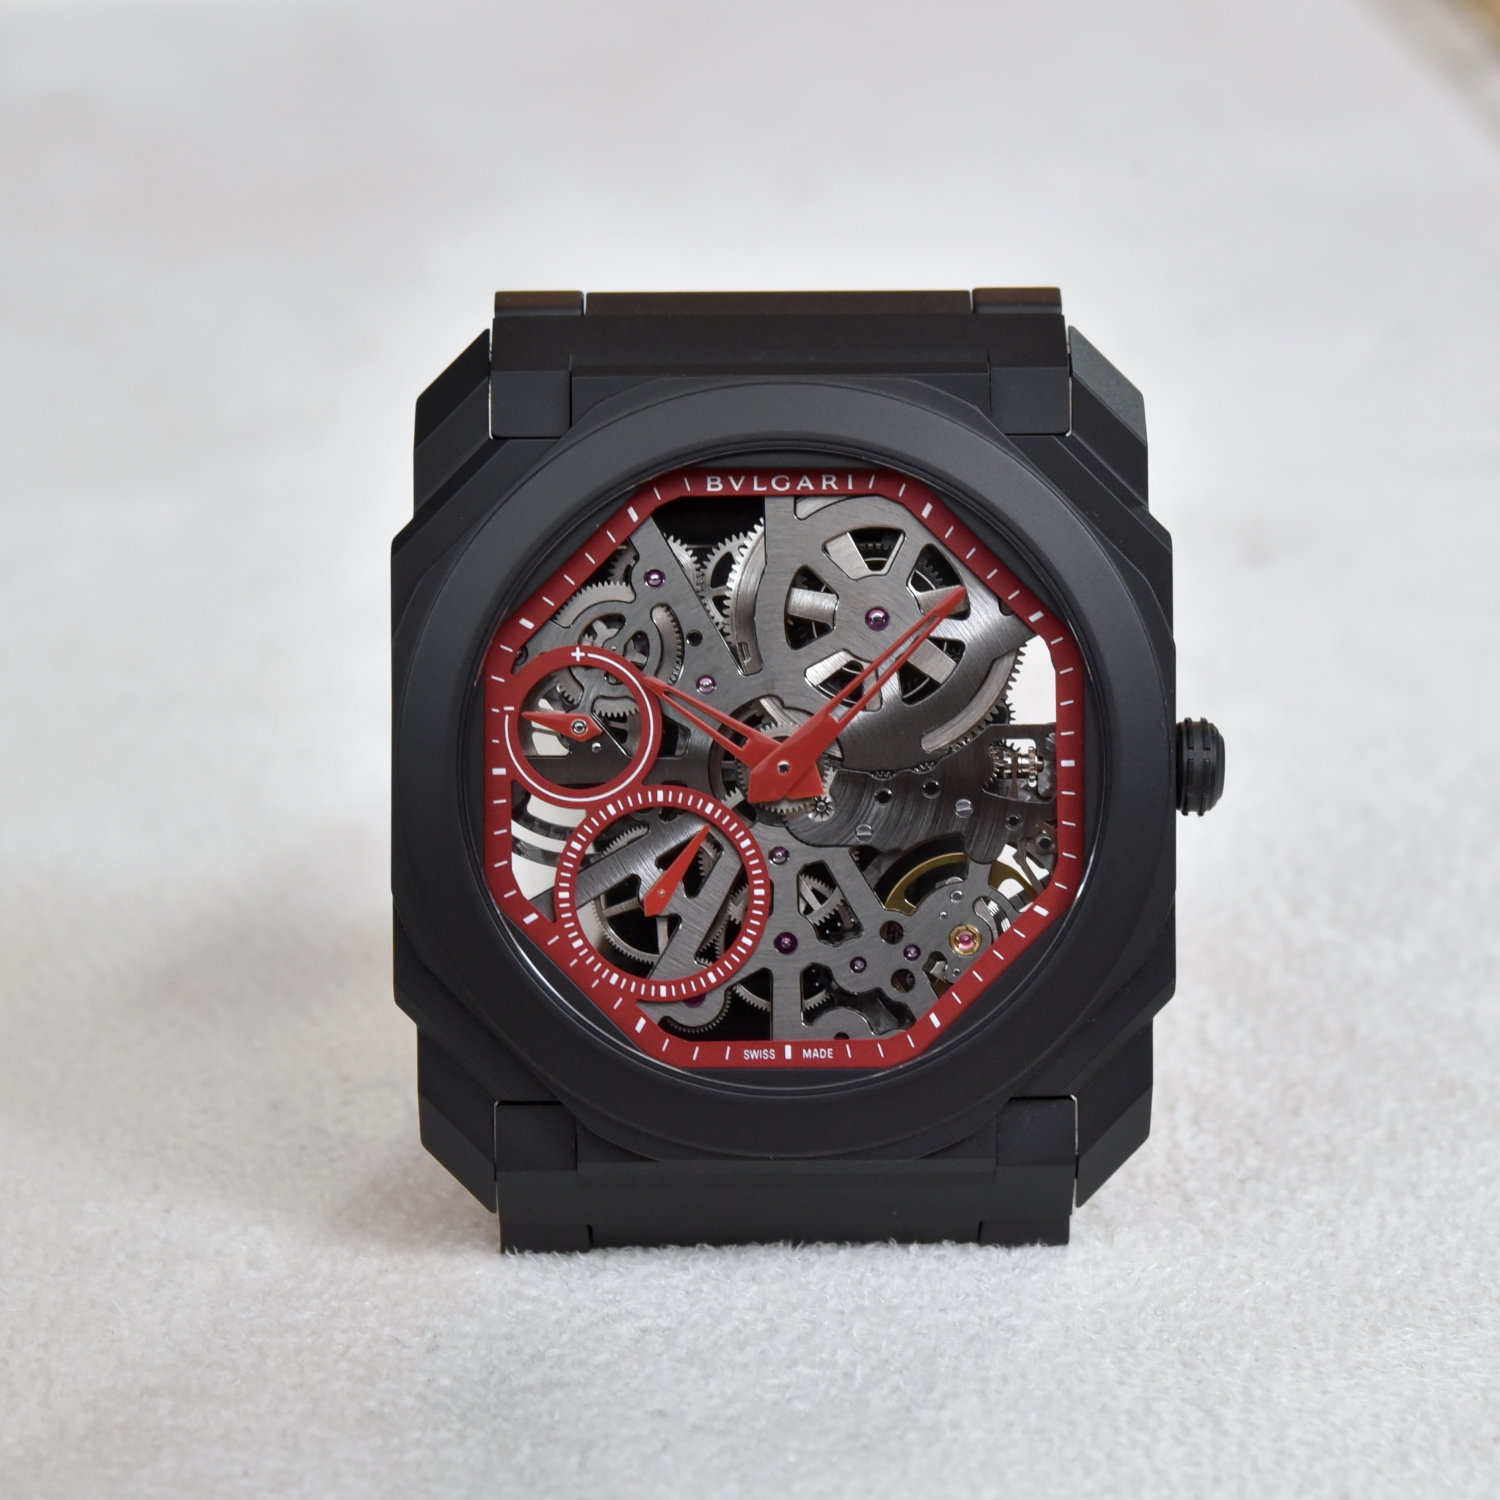 Bvlgari Octo Finissimo Skeleton Red Limited Edition Review 3